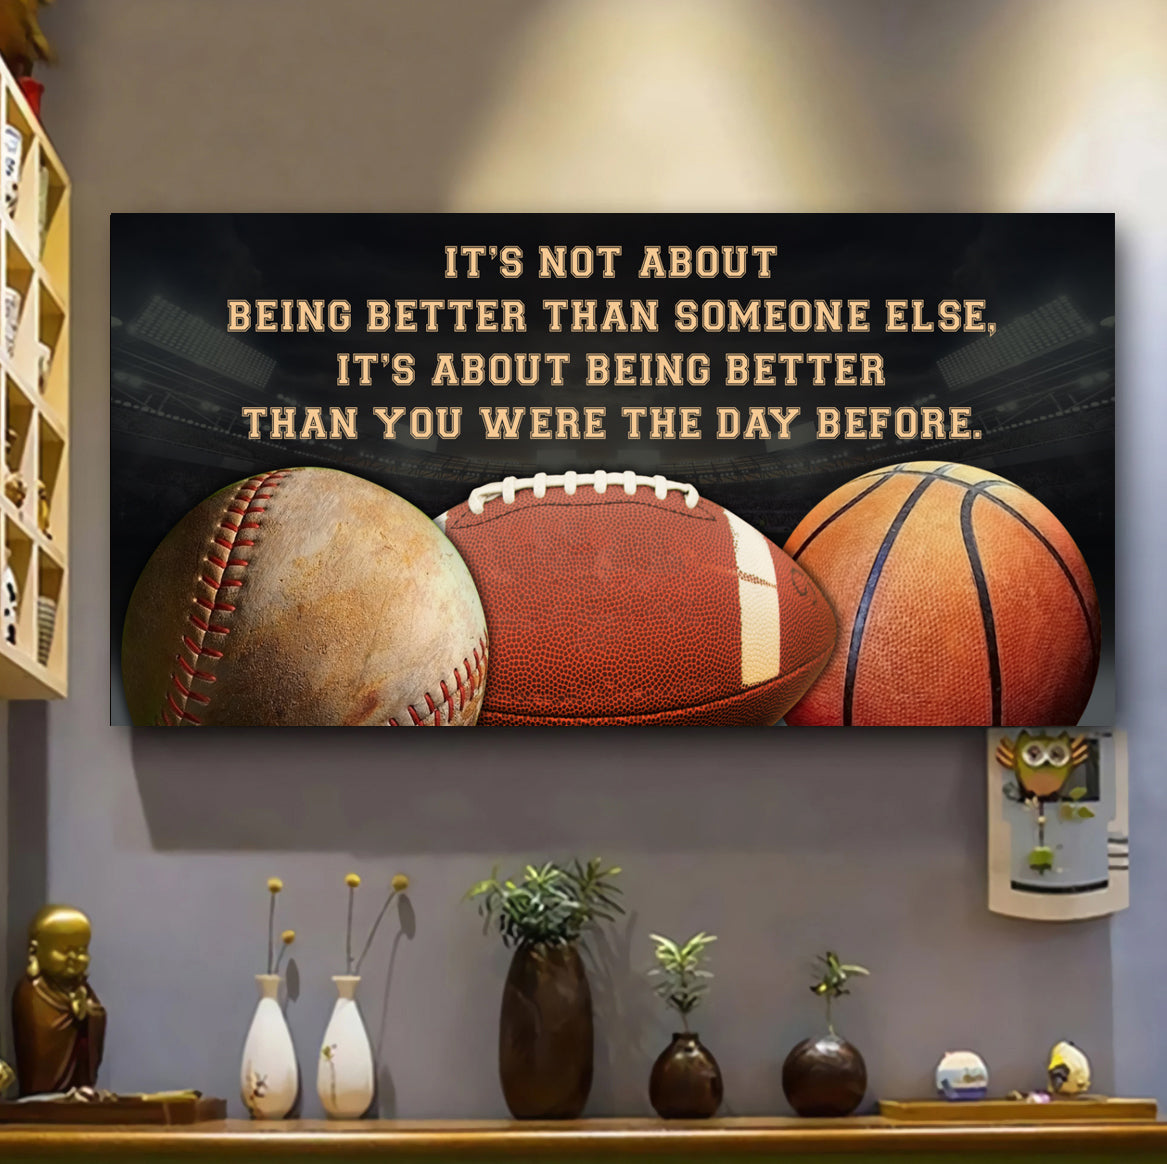 (QH664) Customizable Baseball, football, basketball Poster canvas - It's not about - FREE SHIPPING ON ORDERS OVER $75